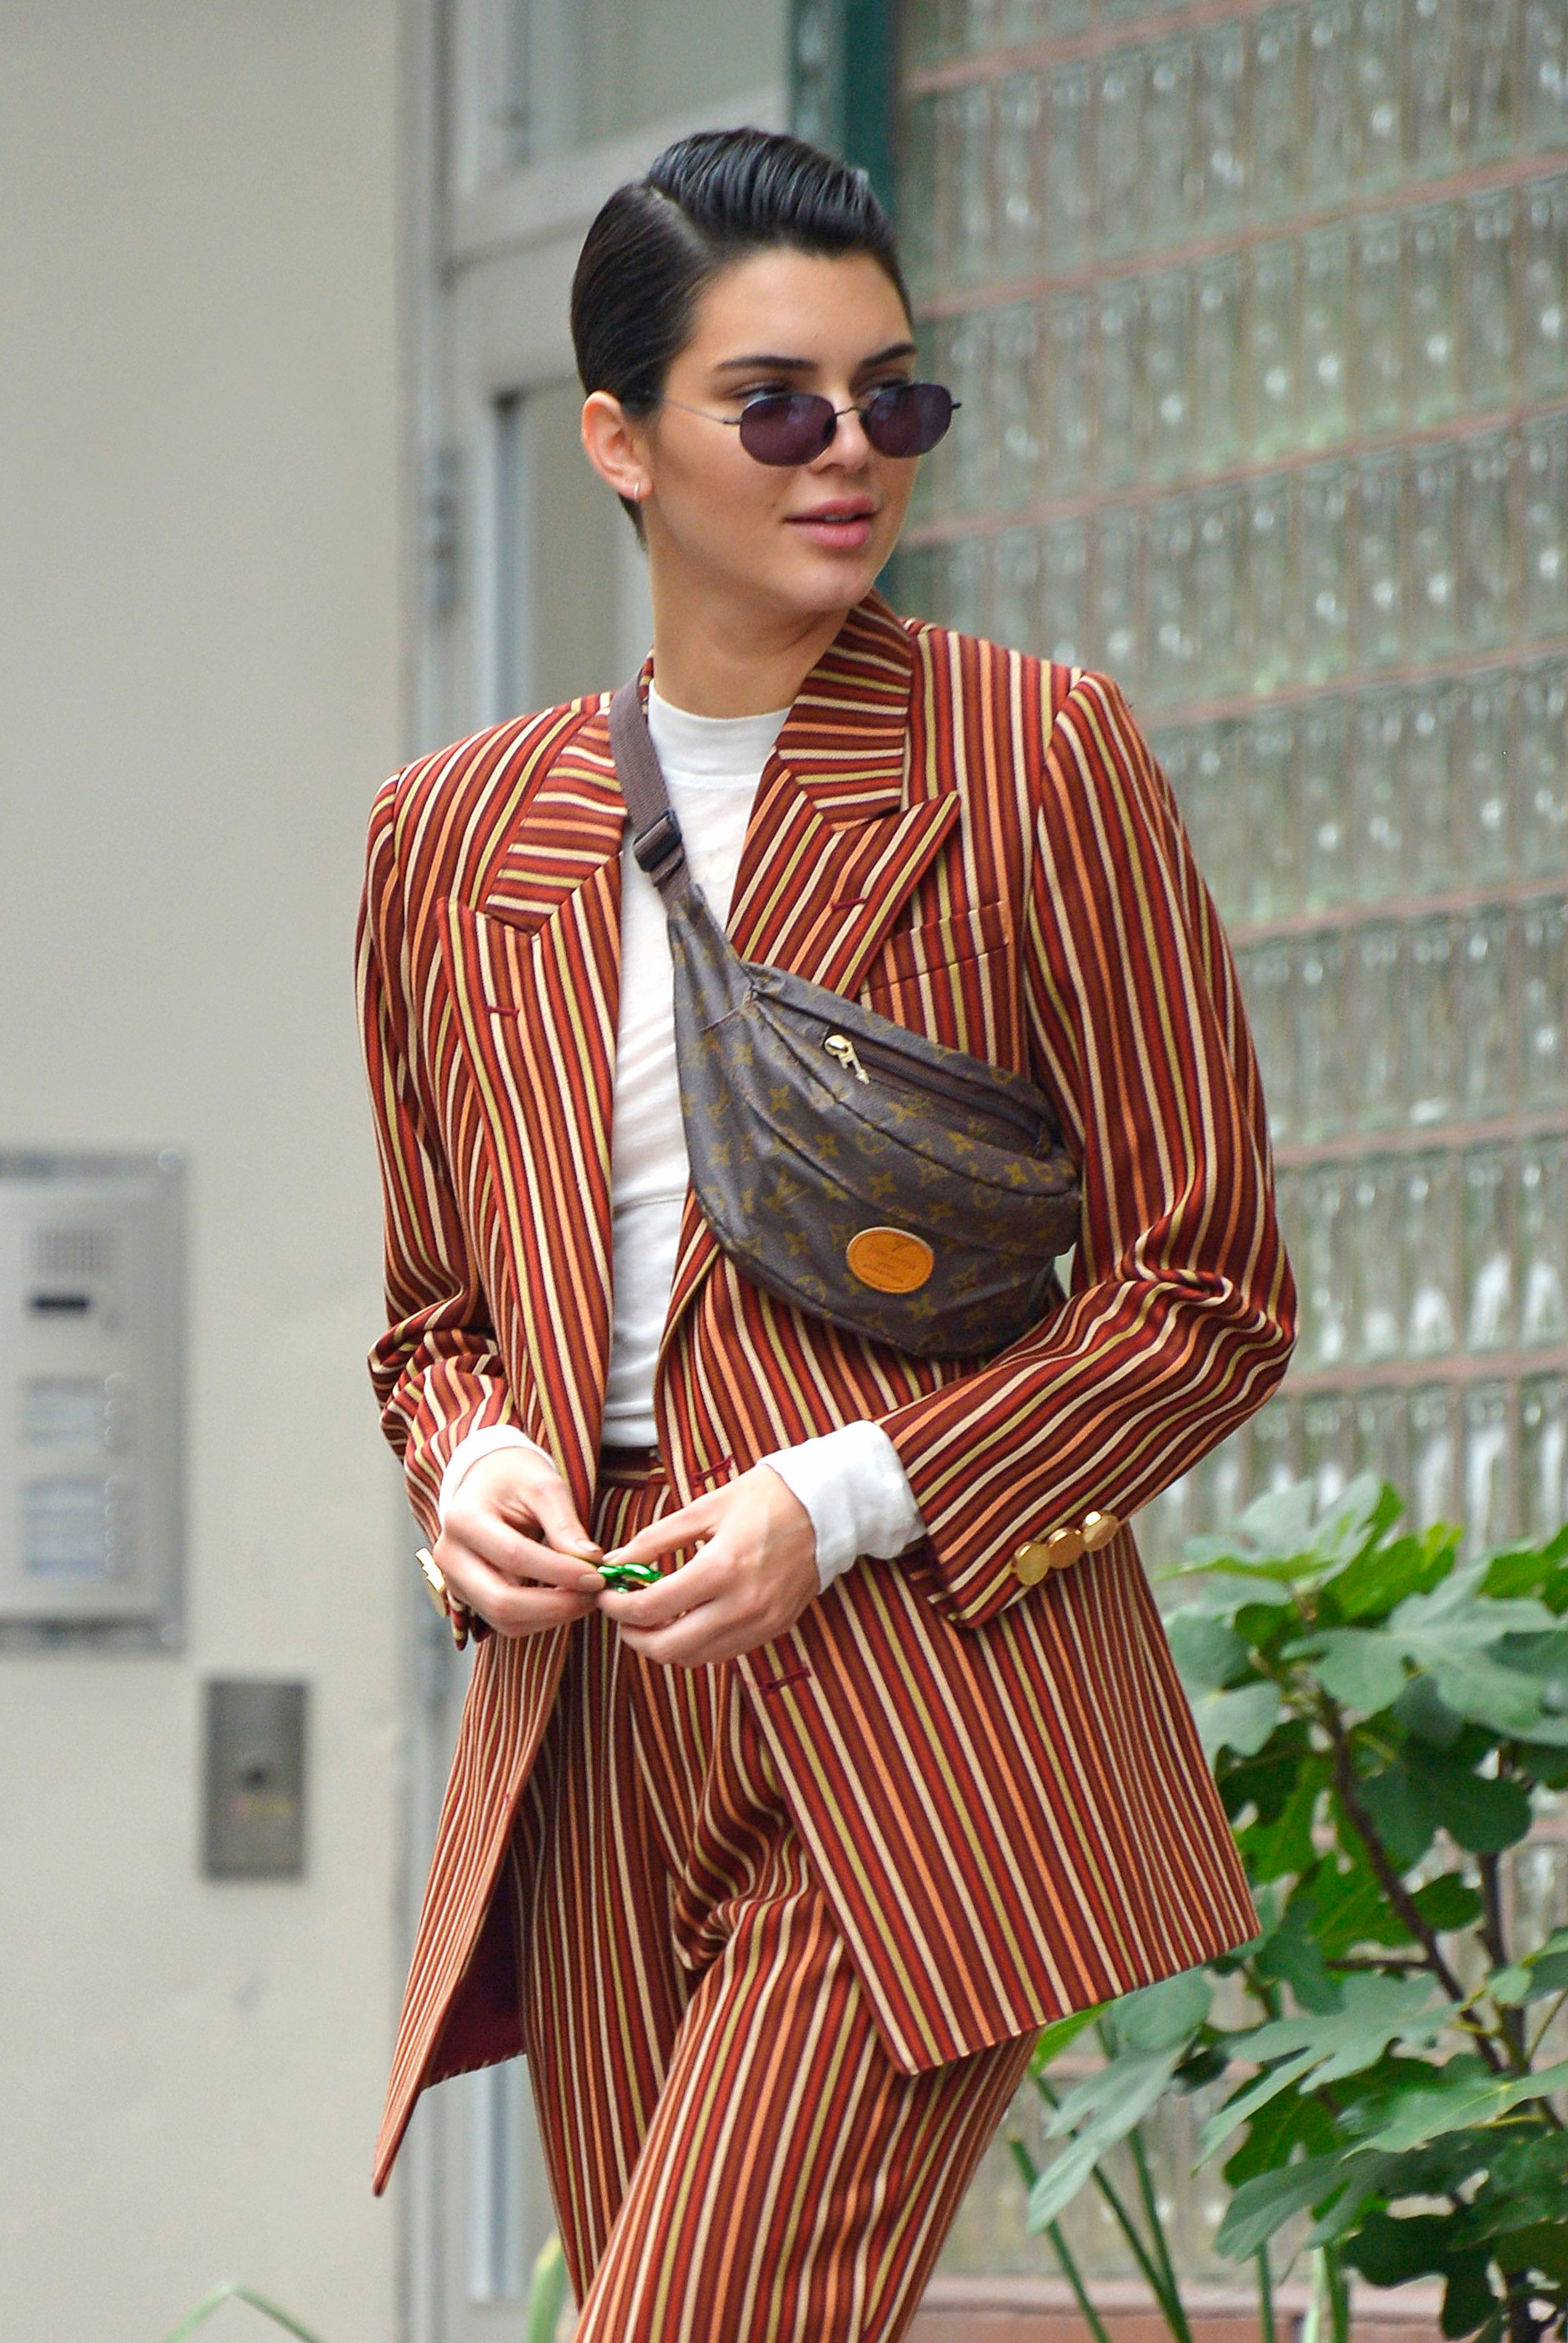 Kendall Jenner wears a modern brown striped suit with white sneakers and her fanny pack while out window shopping at Phillip Lim in NOHO New York City